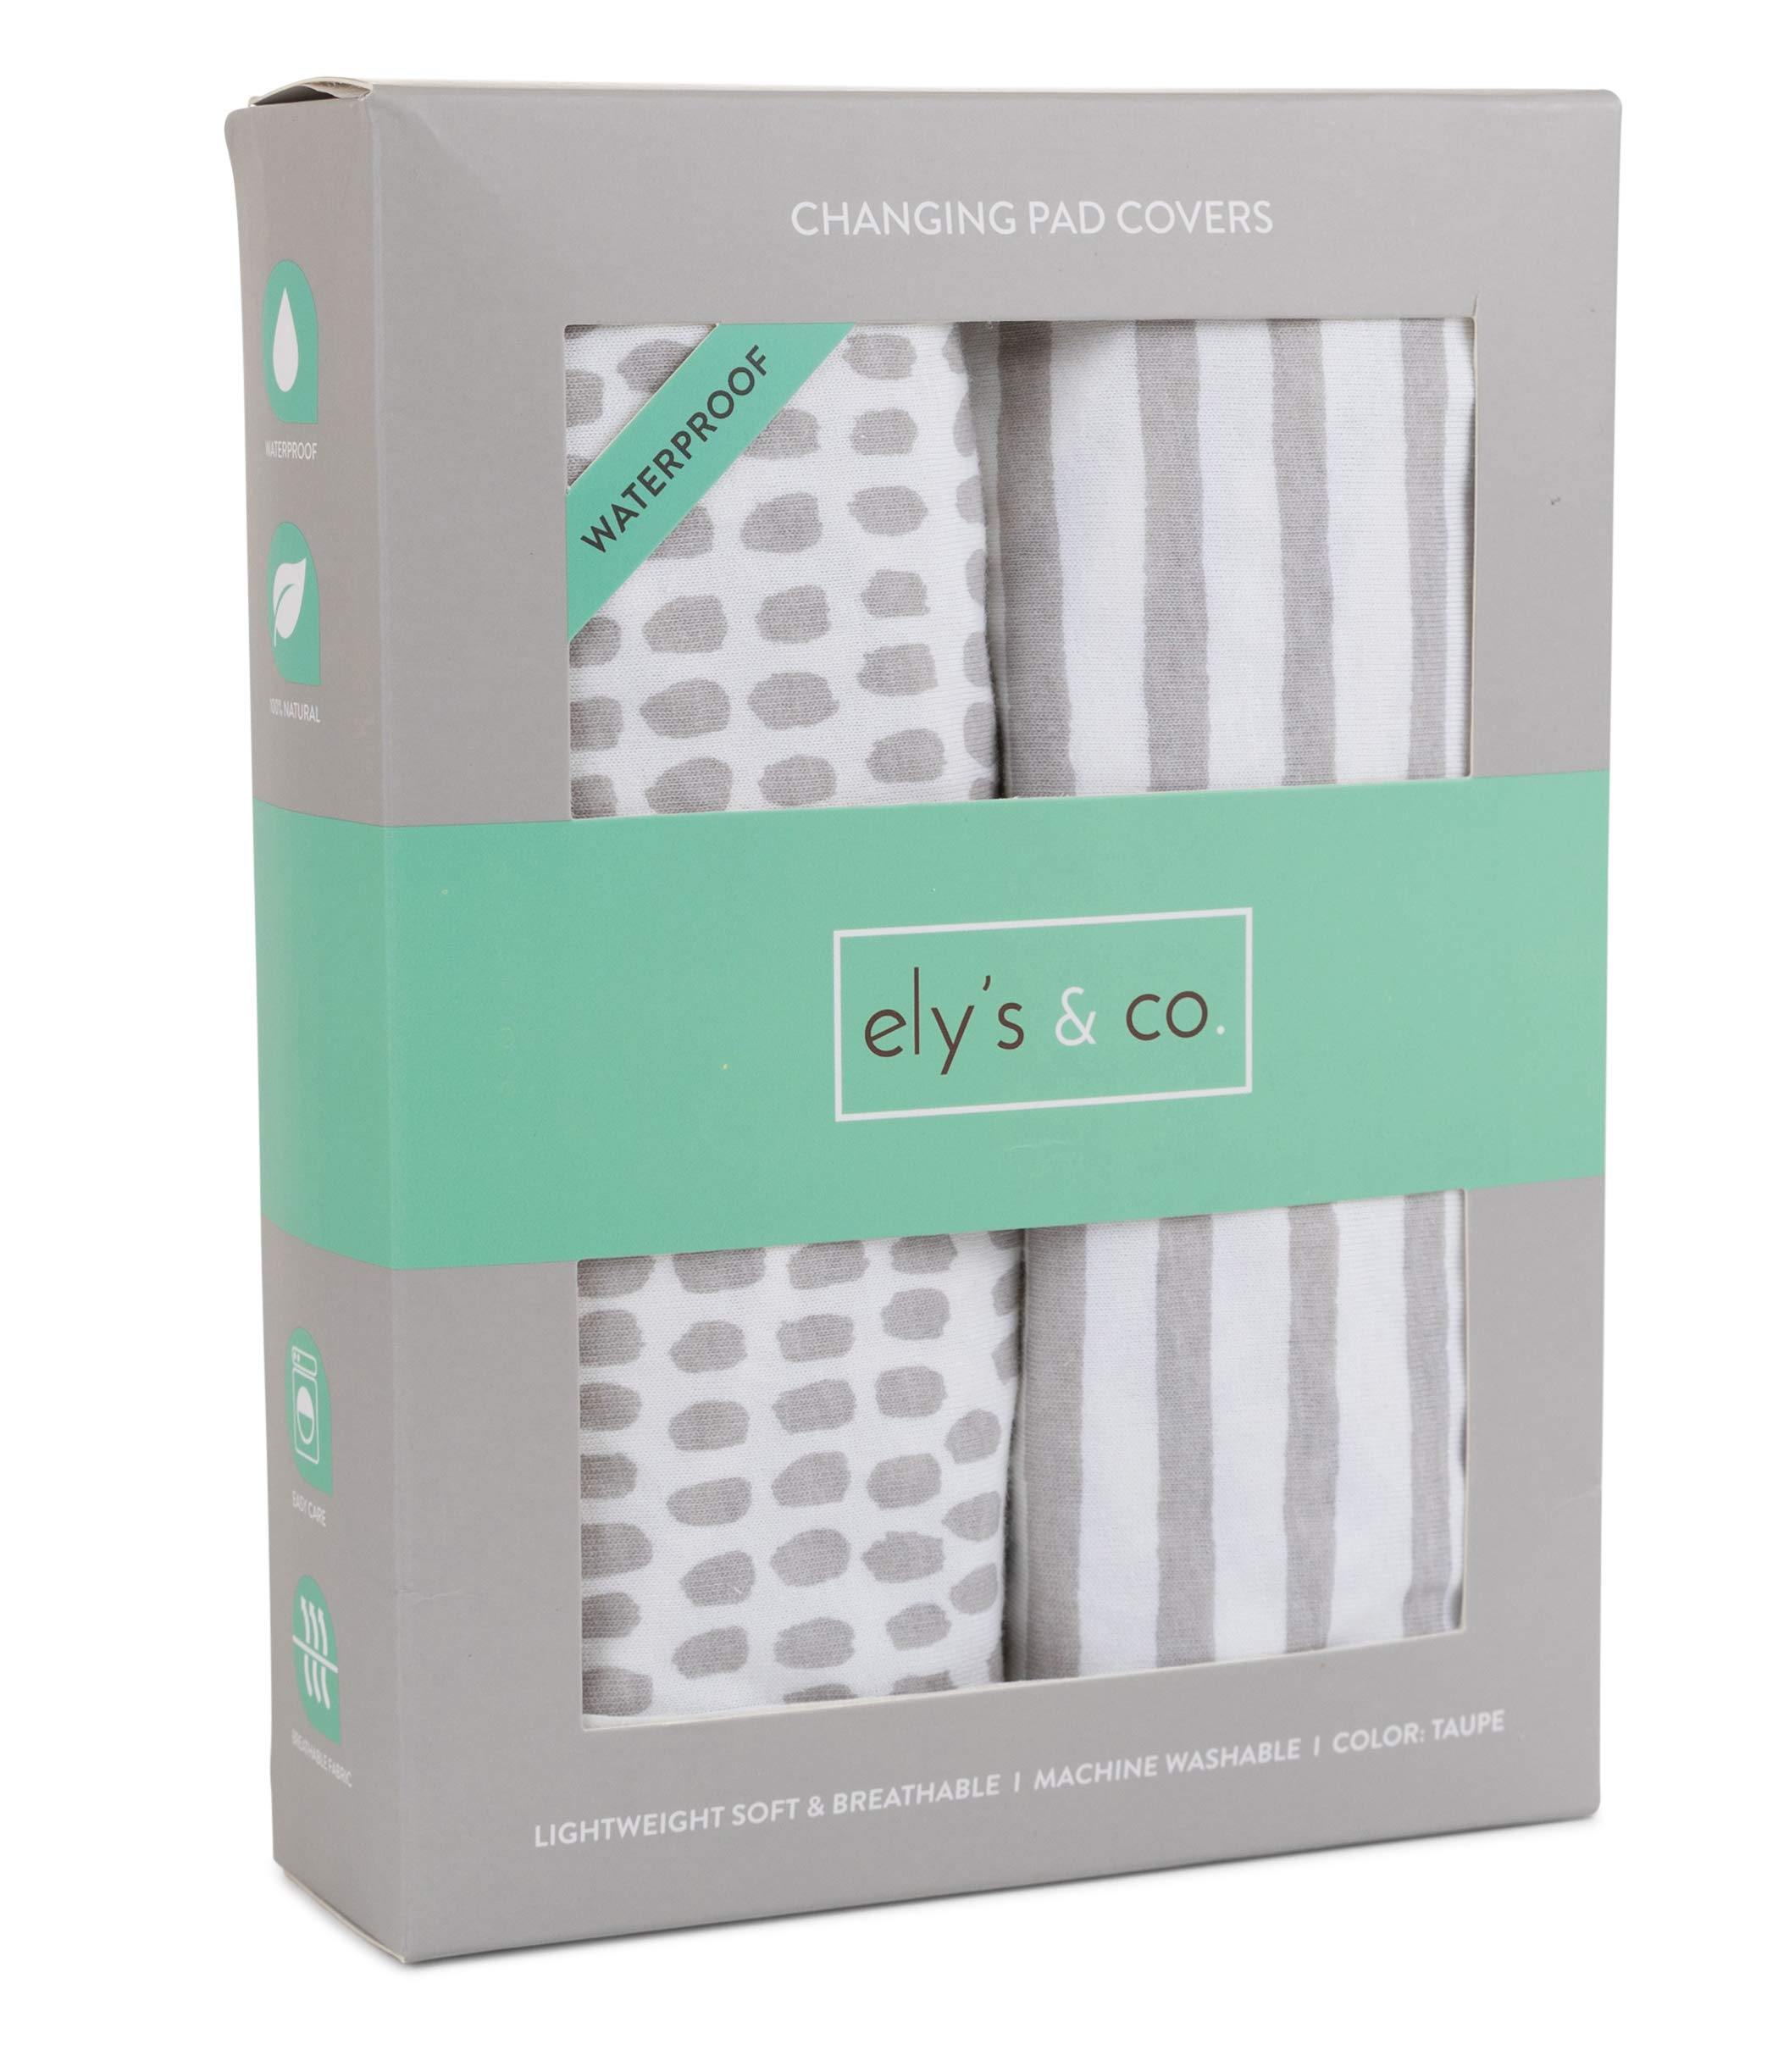 Waterproof Changing Pad Cover Set 100% Jersey Cotton 2 Pack | No Need for Changing Liner | Taupe Stripes and Spalsh by Ely's & Co.